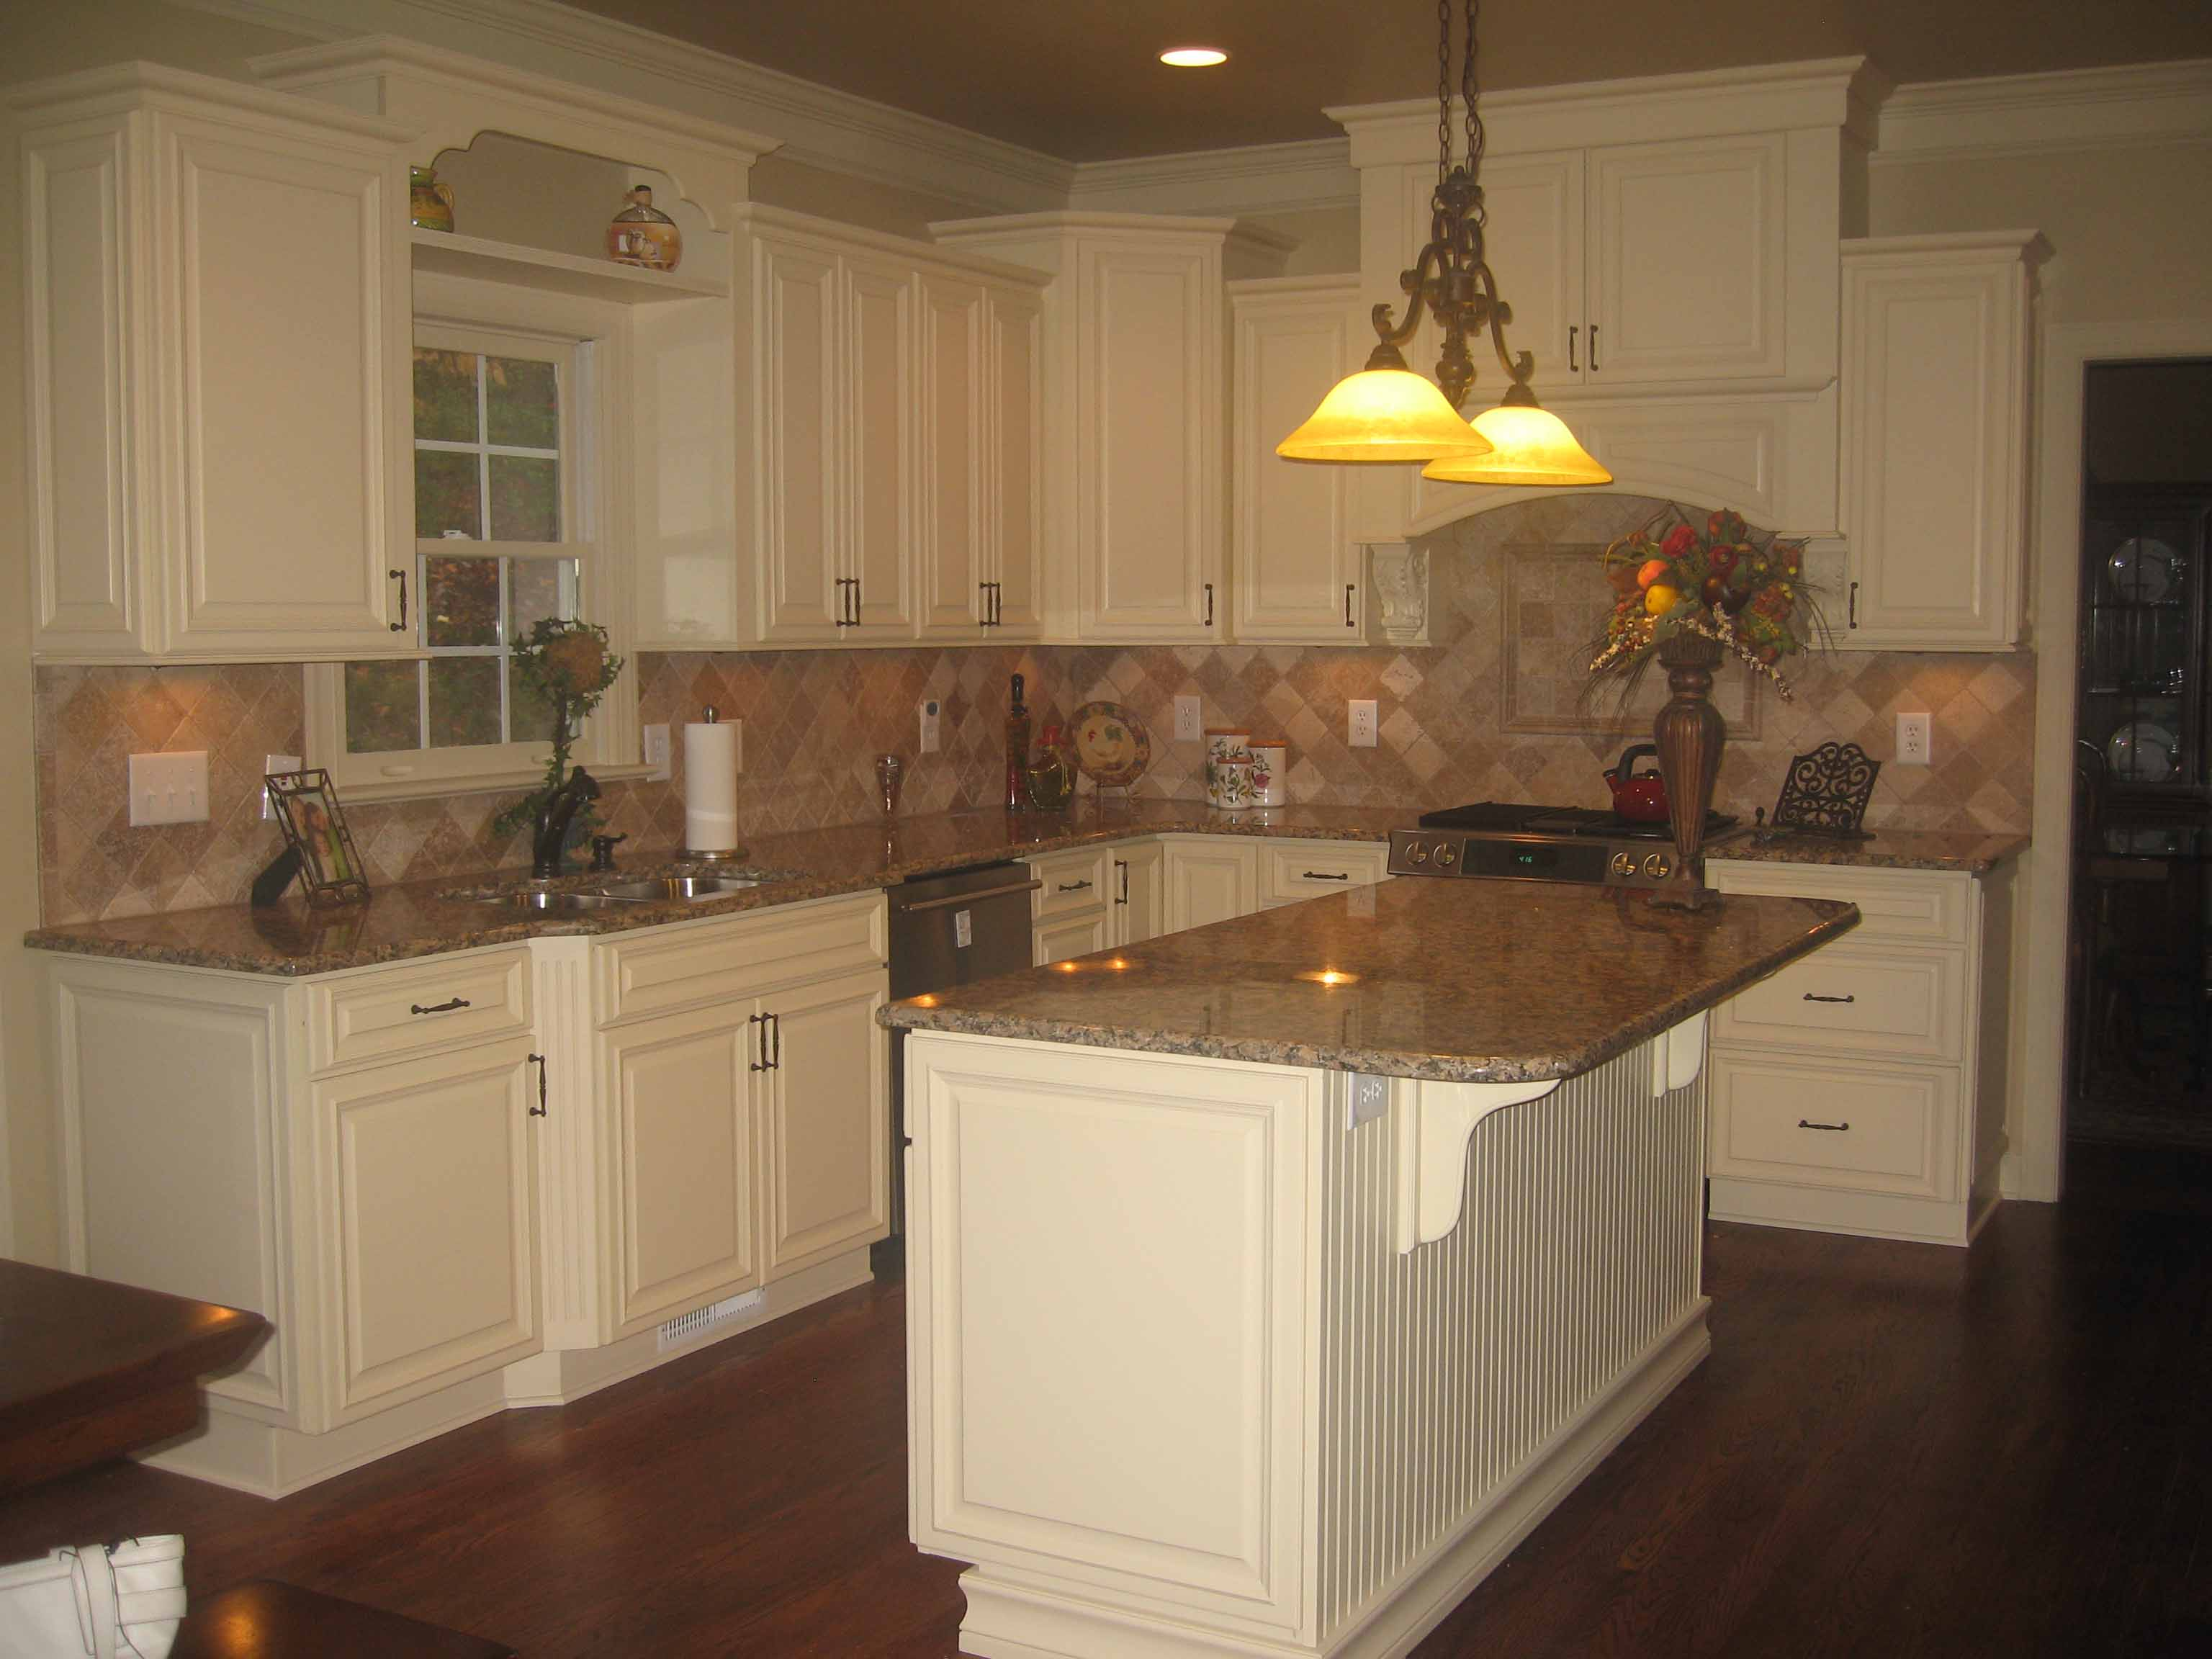 buy cabinets online, rta kitchen cabinets, kitchen cabinets